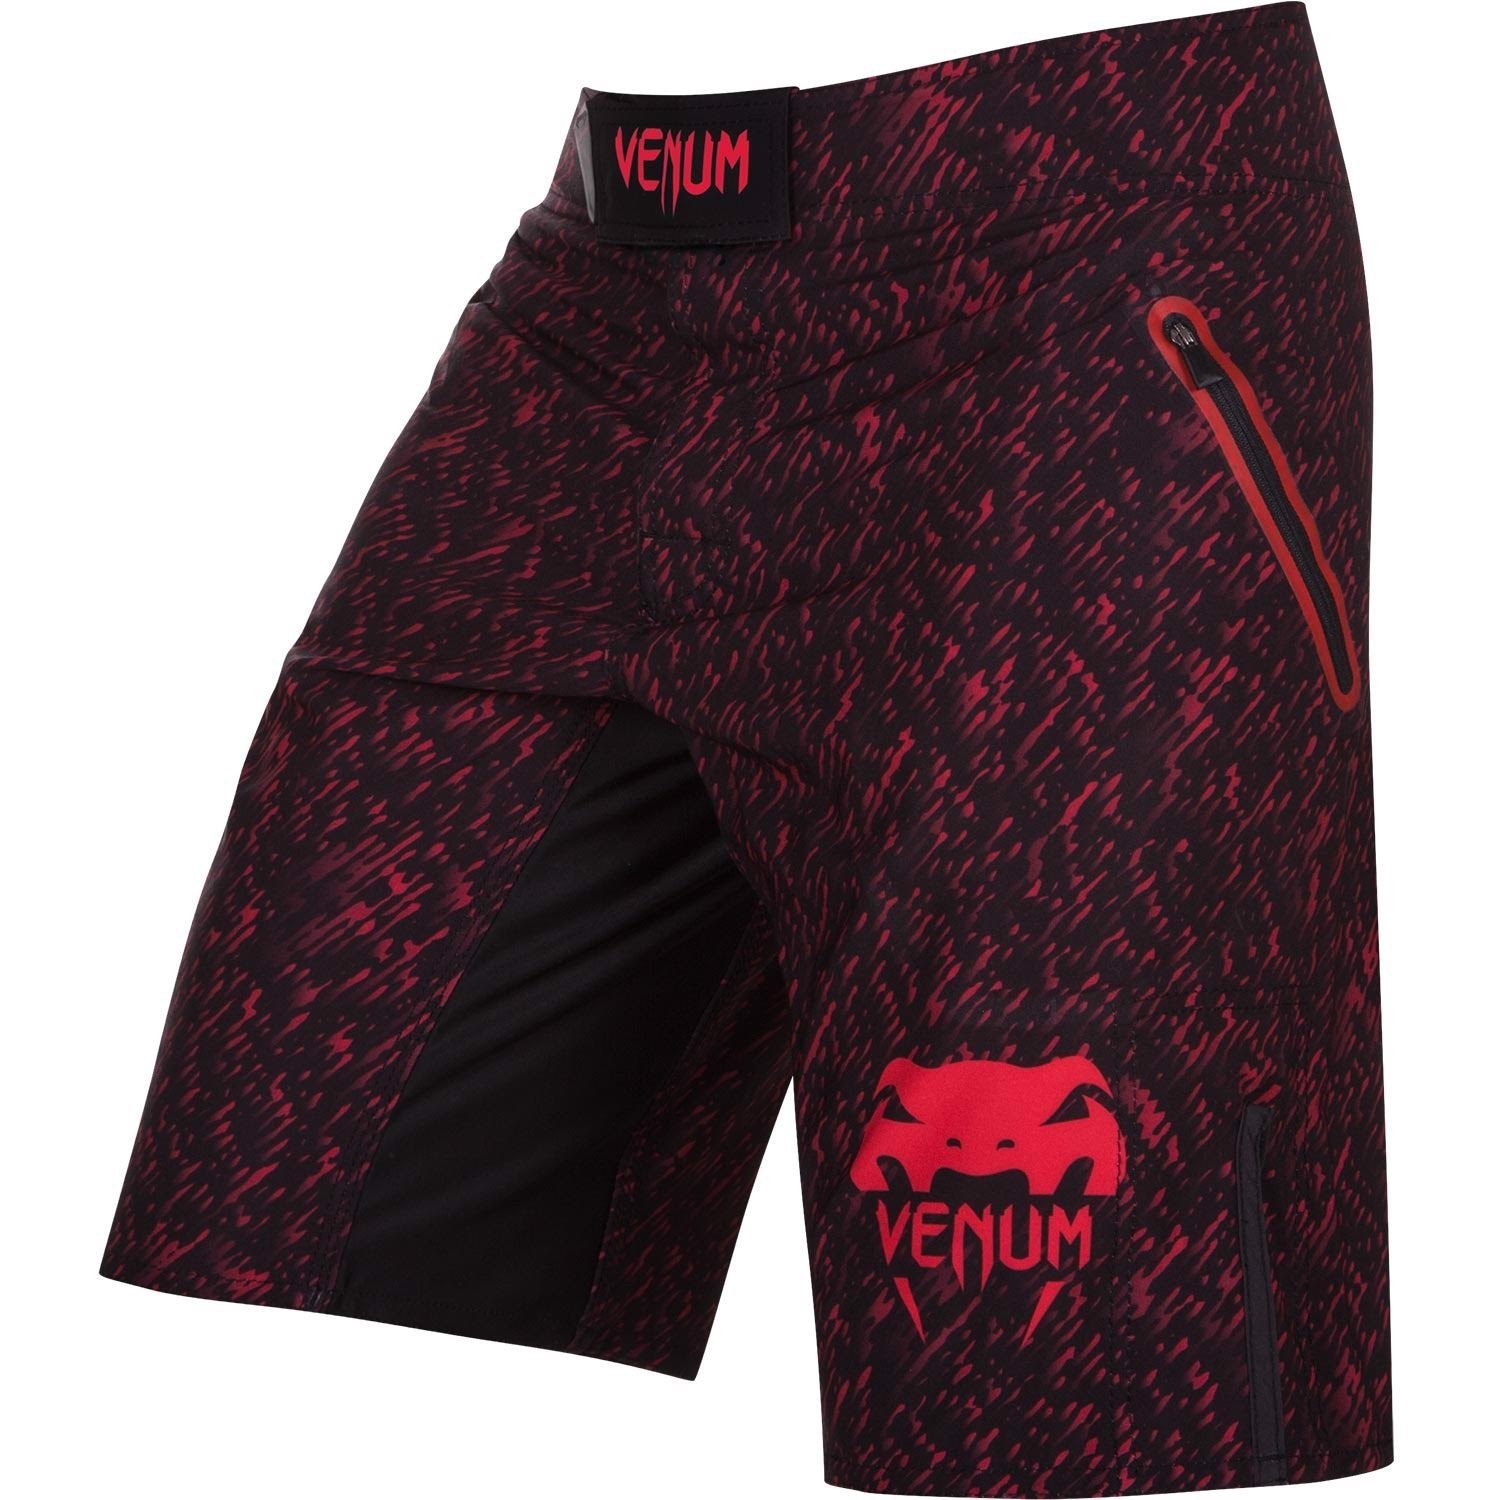 QUẦN VENUM NOISE MMA FIGHT SHORTS - BLACK/RED